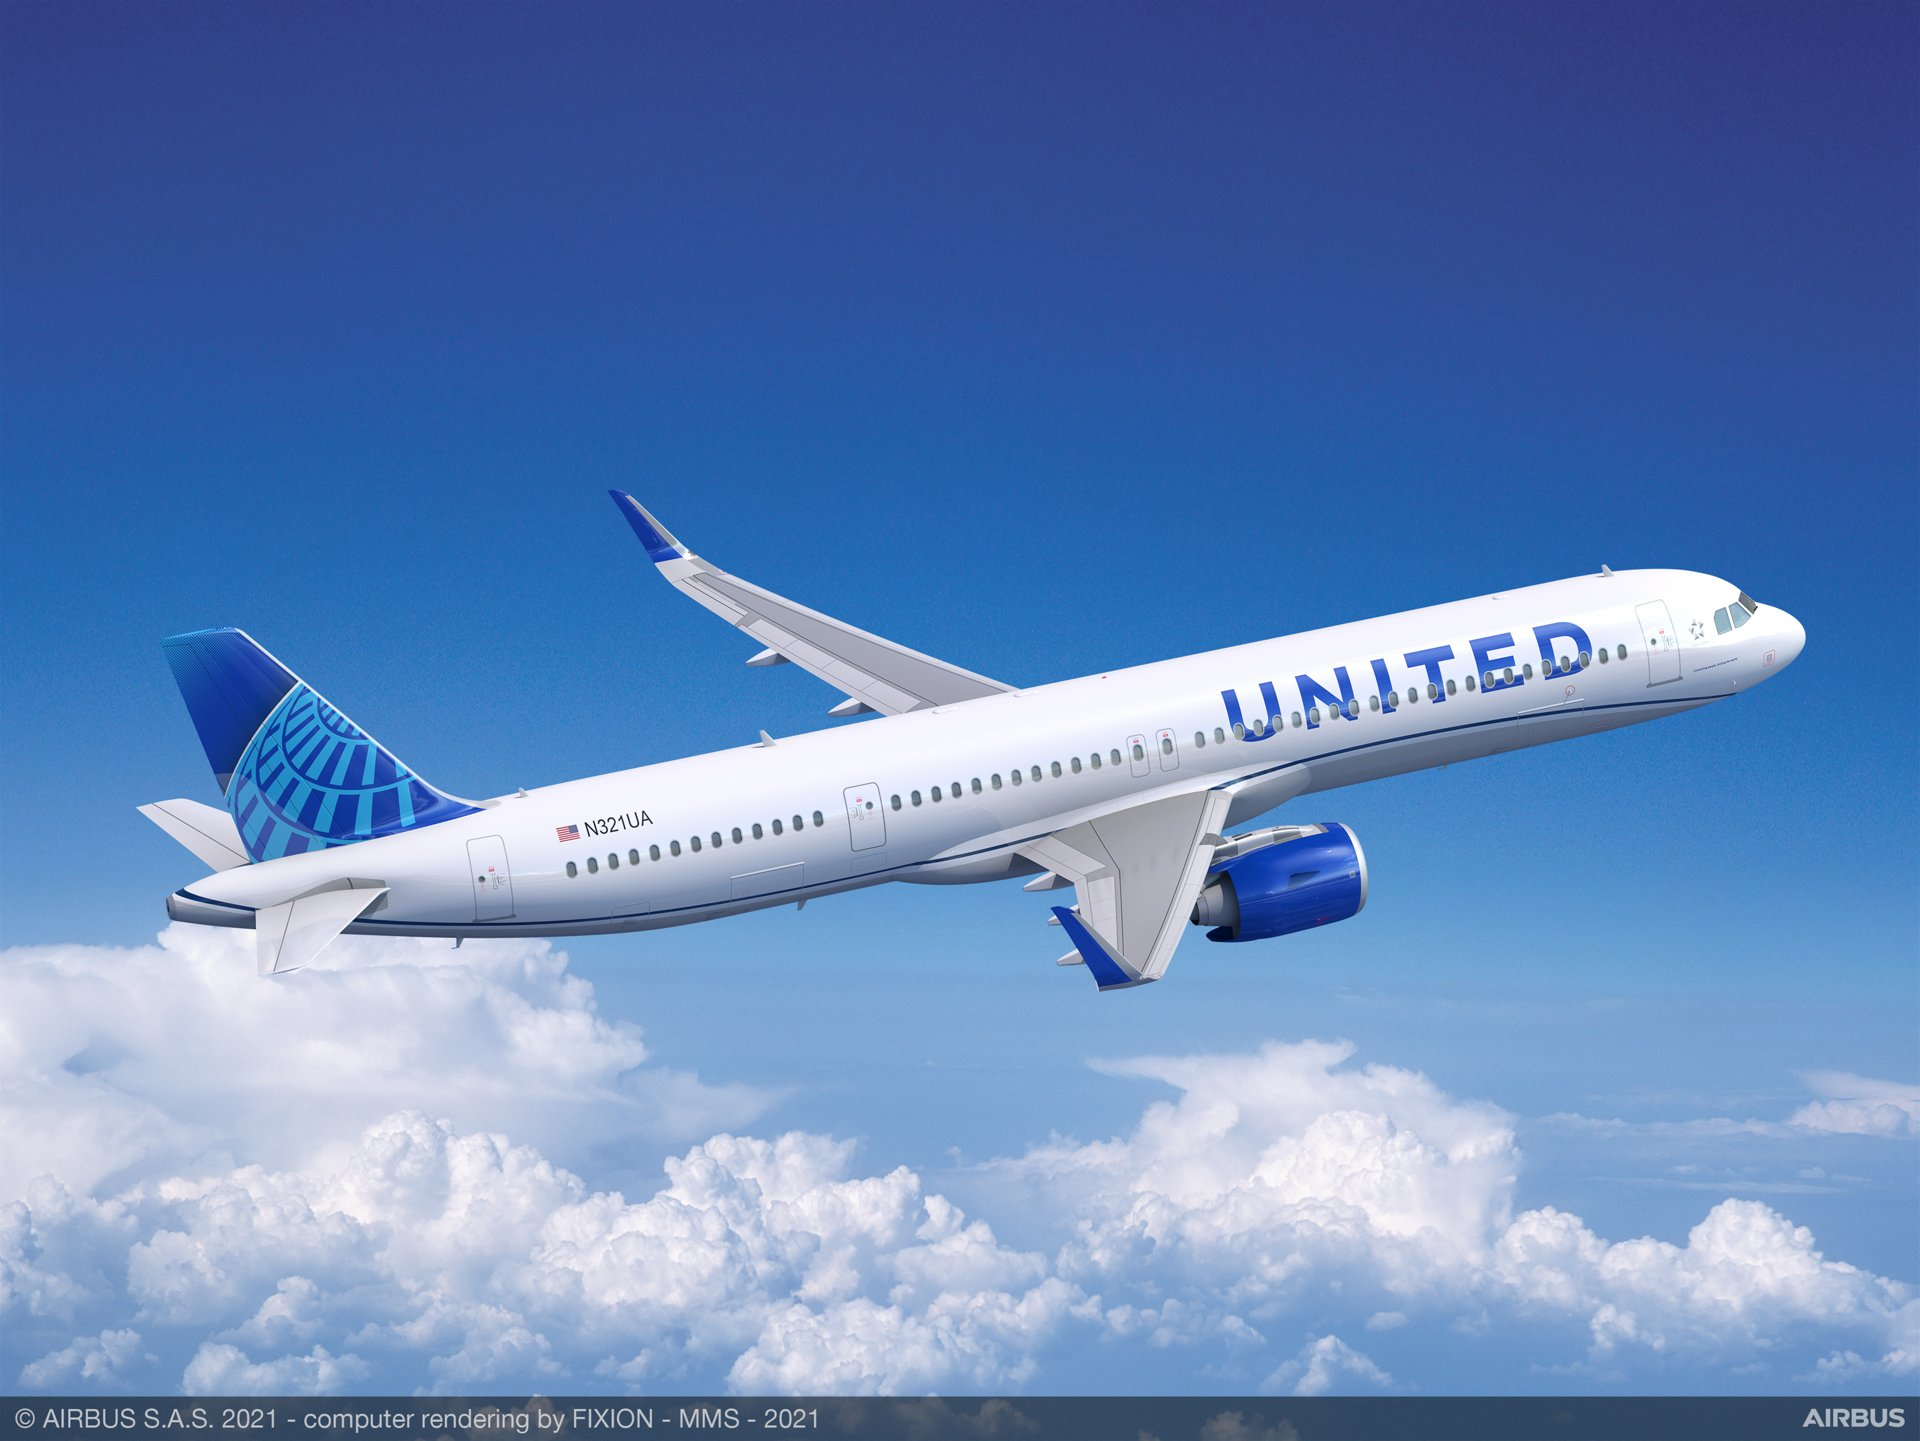 """United Airlines has placed an order for 70 Airbus A321neo aircraft, positioning the airline to grow its presence in the single-aisle market in alignment with its """"United Next"""" initiative.  The new order complements existing orders from United for 50 A321XLR aircraft, bringing the total commitment from the airline to 120 A321 aircraft."""